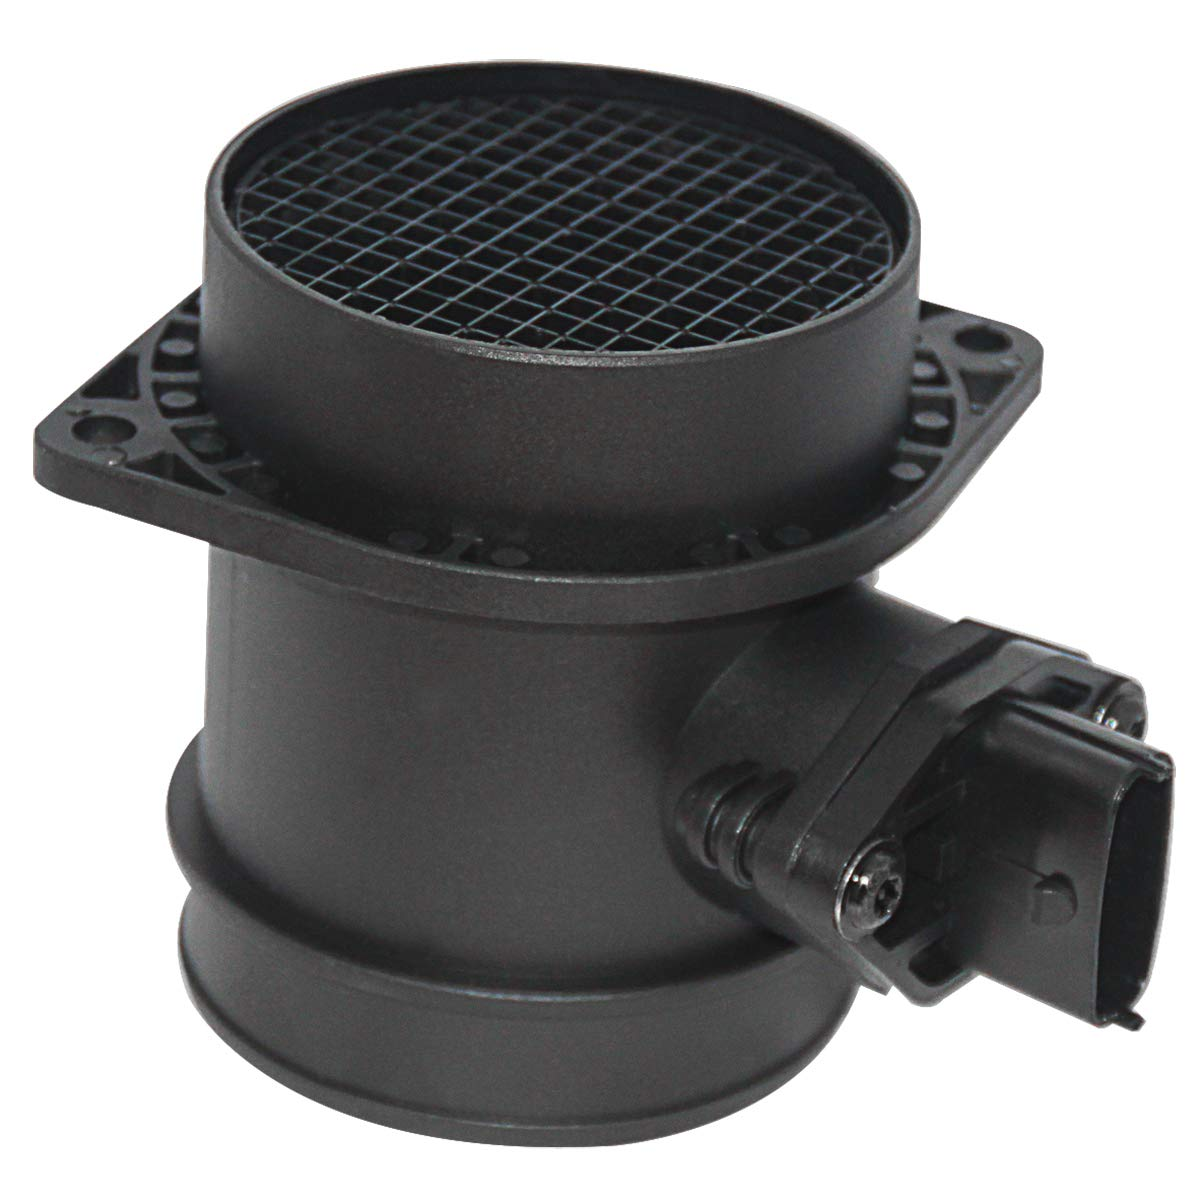 Mass Air Flow Meter Sensor MAF Compatible with Volvo C70 S60 S80 V50 V70 XC70 XC90 Fit 0280218088 8670115